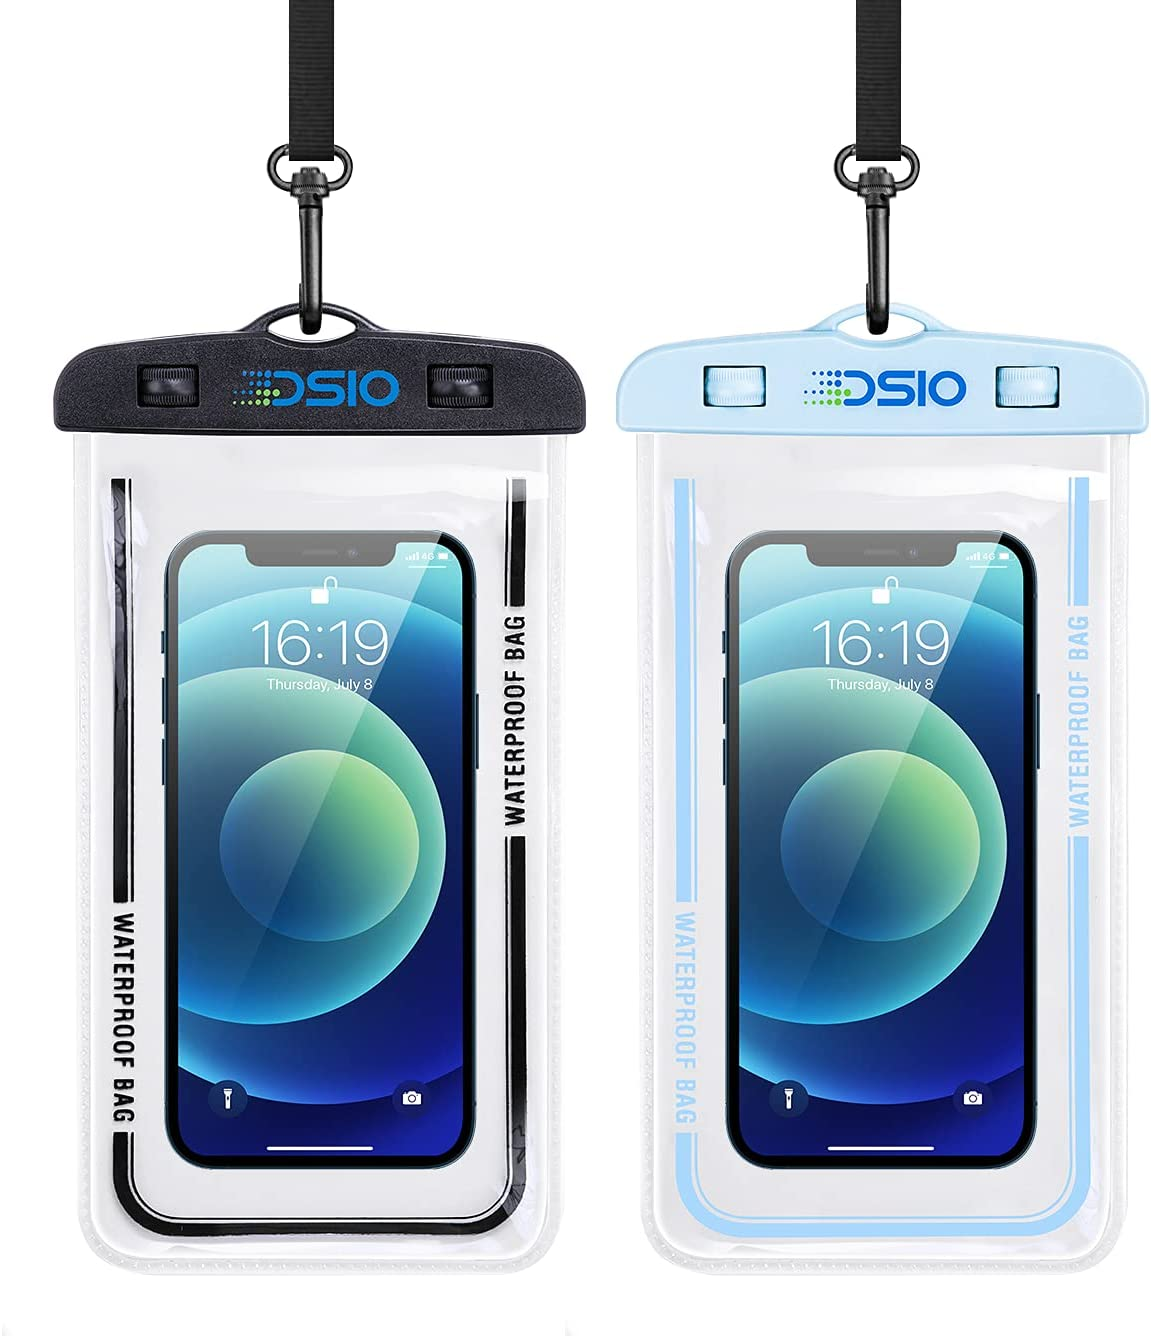 Waterproof Phone Case,2PCS IPX8 Waterproof Phone Pouch with Lanyard Compatible for iPhone 12 Pro 11 Pro Samsung Galaxy s10/s9,Pixel 4 XL up to 7